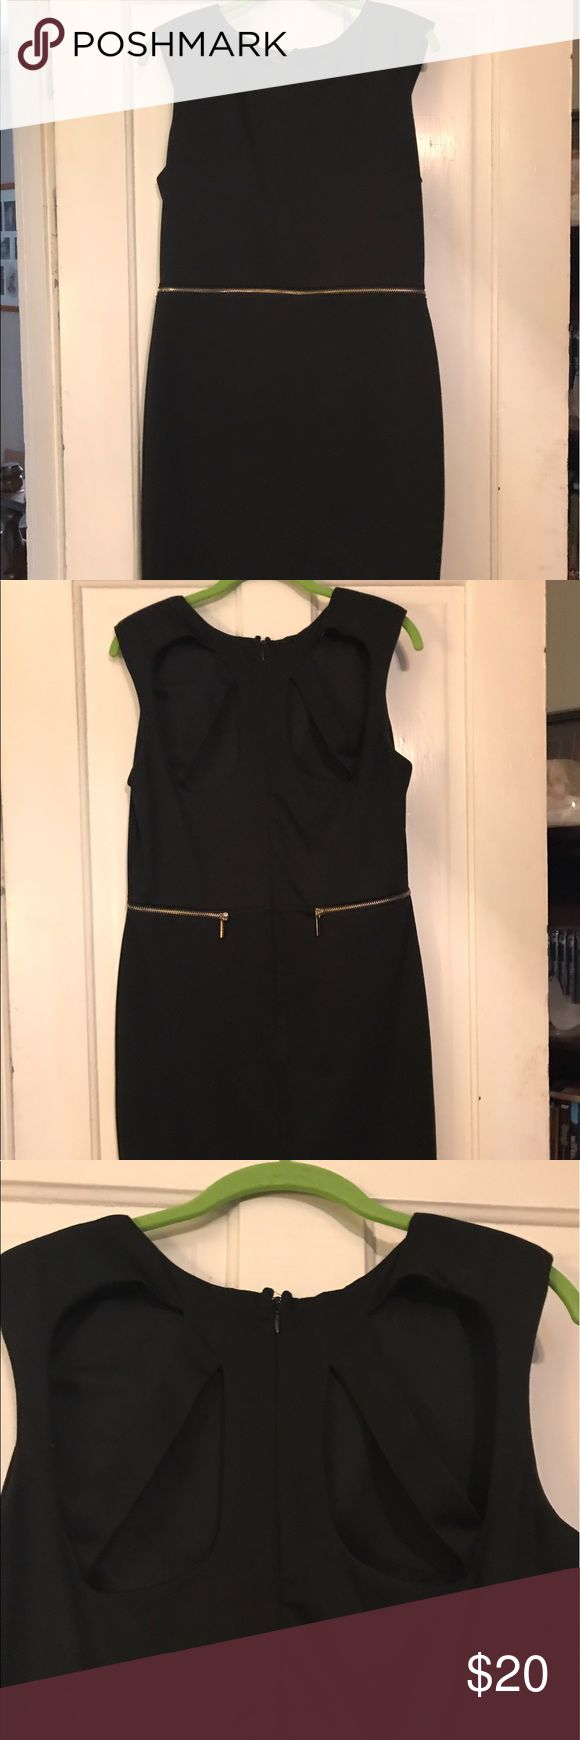 Kardashian Kollection Black Dress Black dress from the Kardashian Kollection at Sears. Has a zipper in the middle section that zips 85% of the way leaving the section in the back connected. cut outs on the top back of the dress. Size Large Kardashian Kollection Dresses